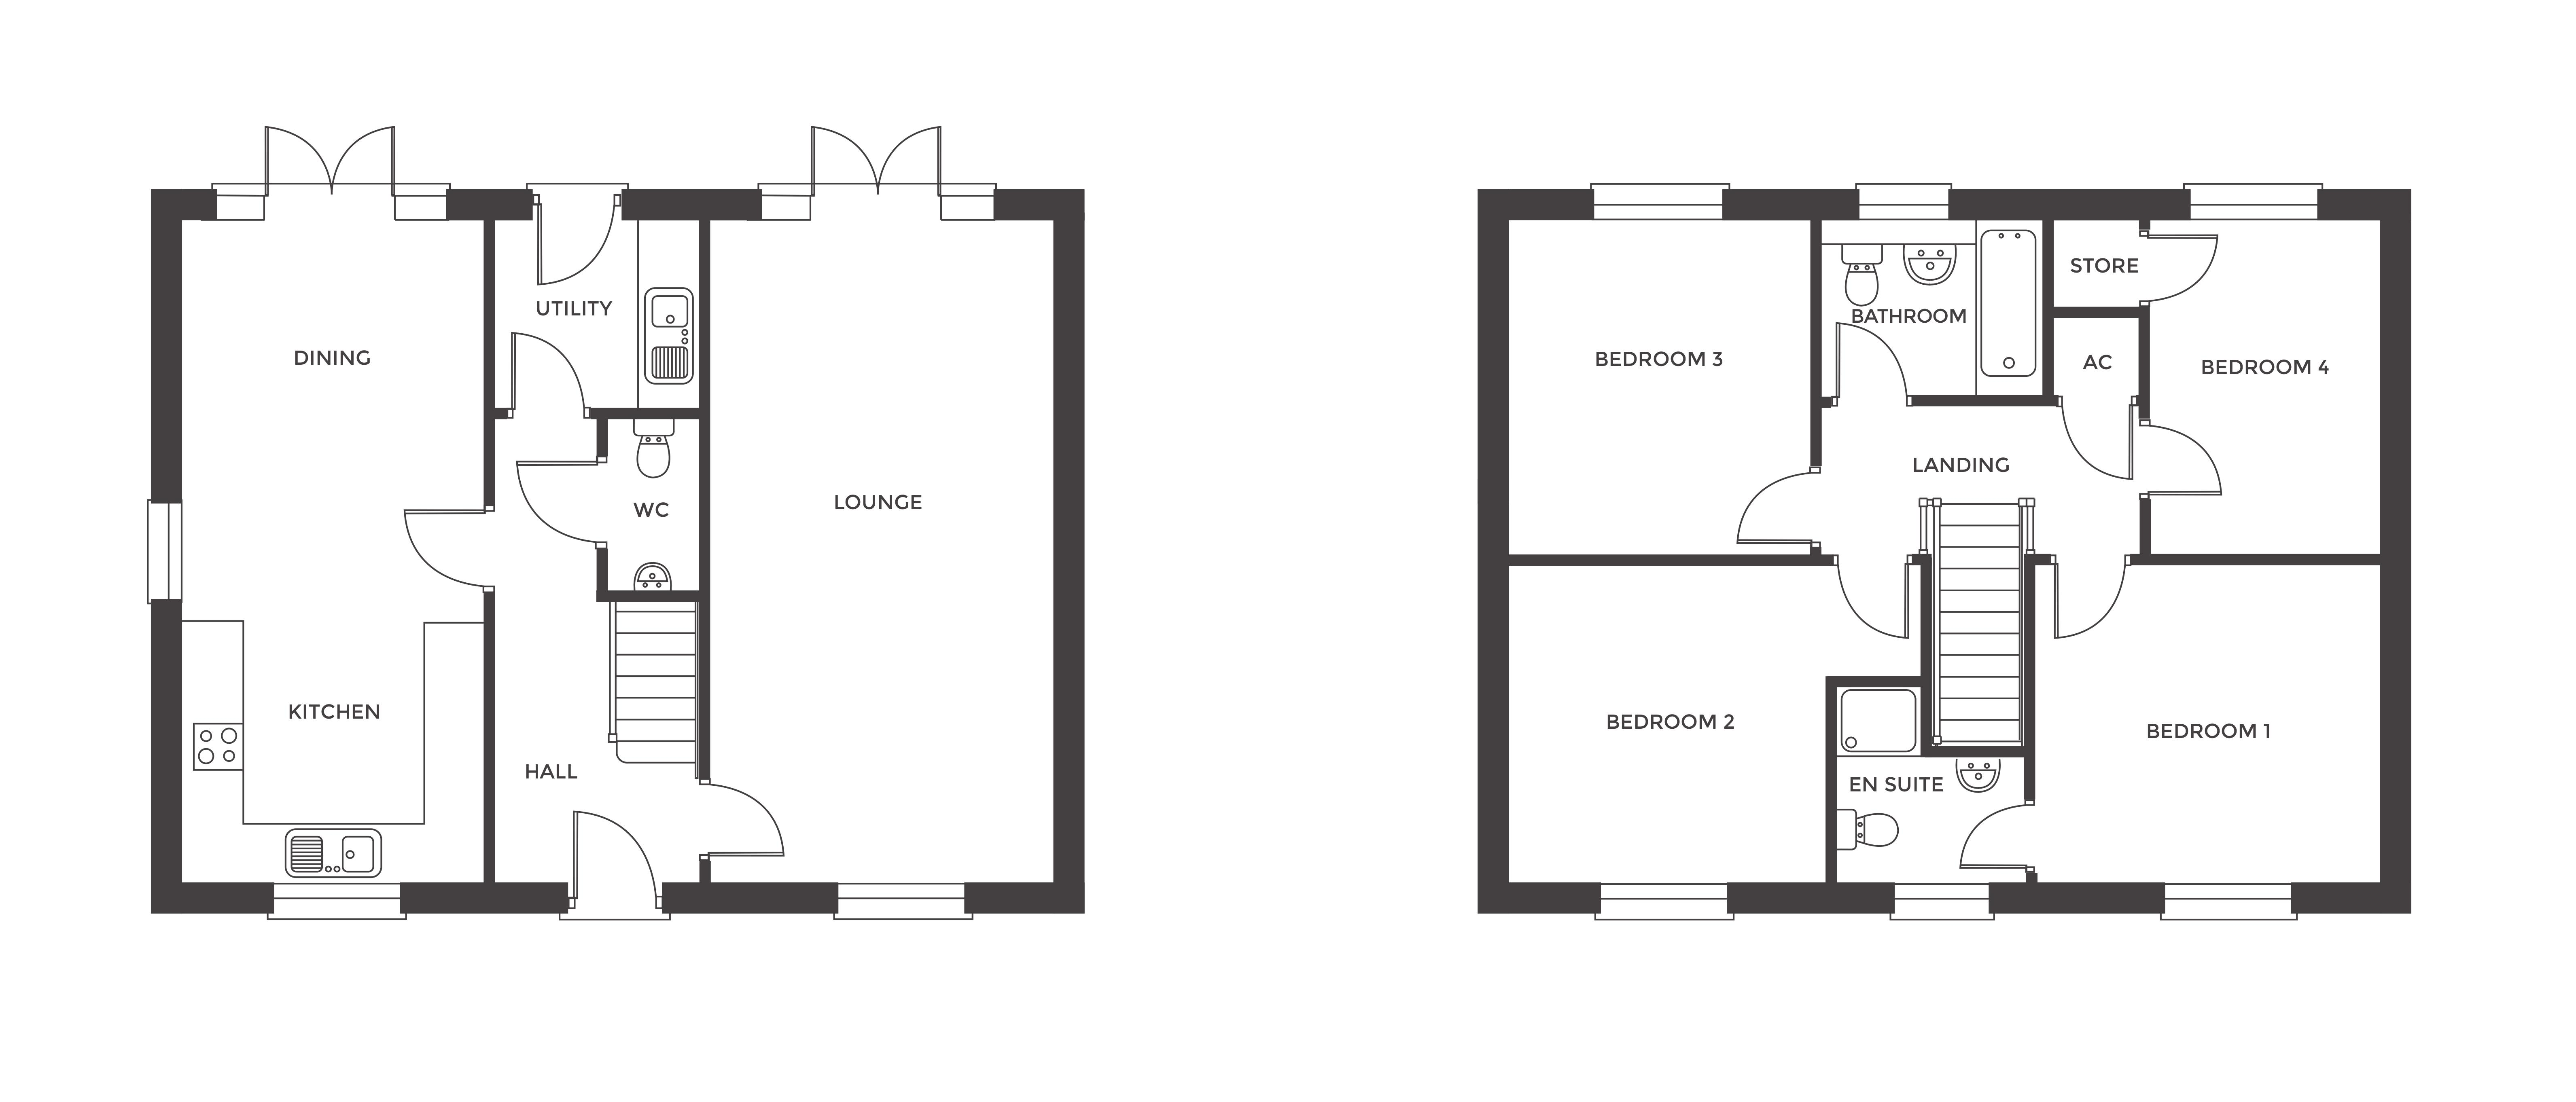 Redfern Rise, Plot 3 floor plan